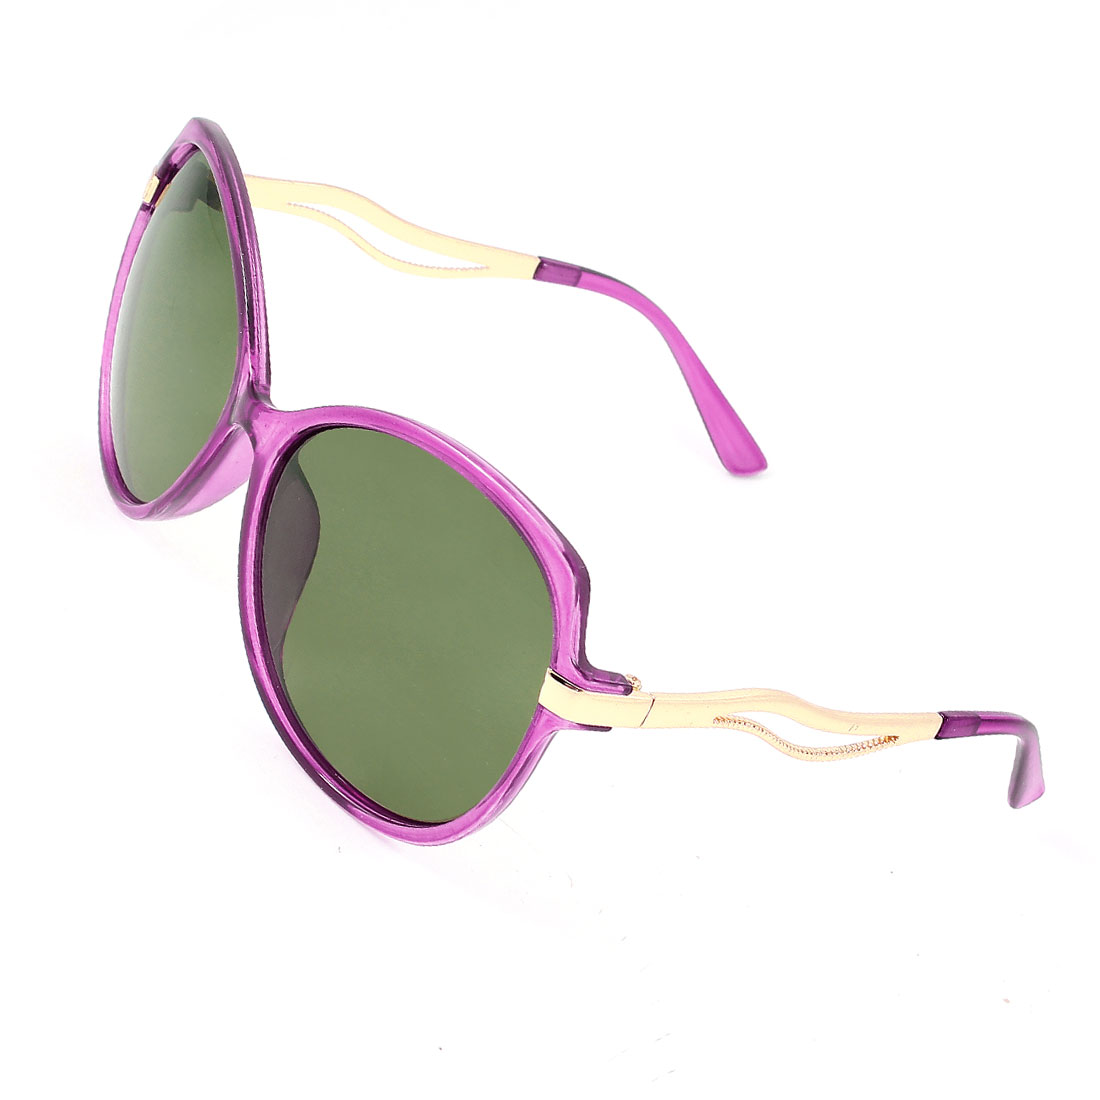 Single Bridge Purple Plastic Full Rim Frame Grey Green Lens Gold Tone Metal Accent Arms Shopping Leisure Polarized Glasses Sunglasses for Lady